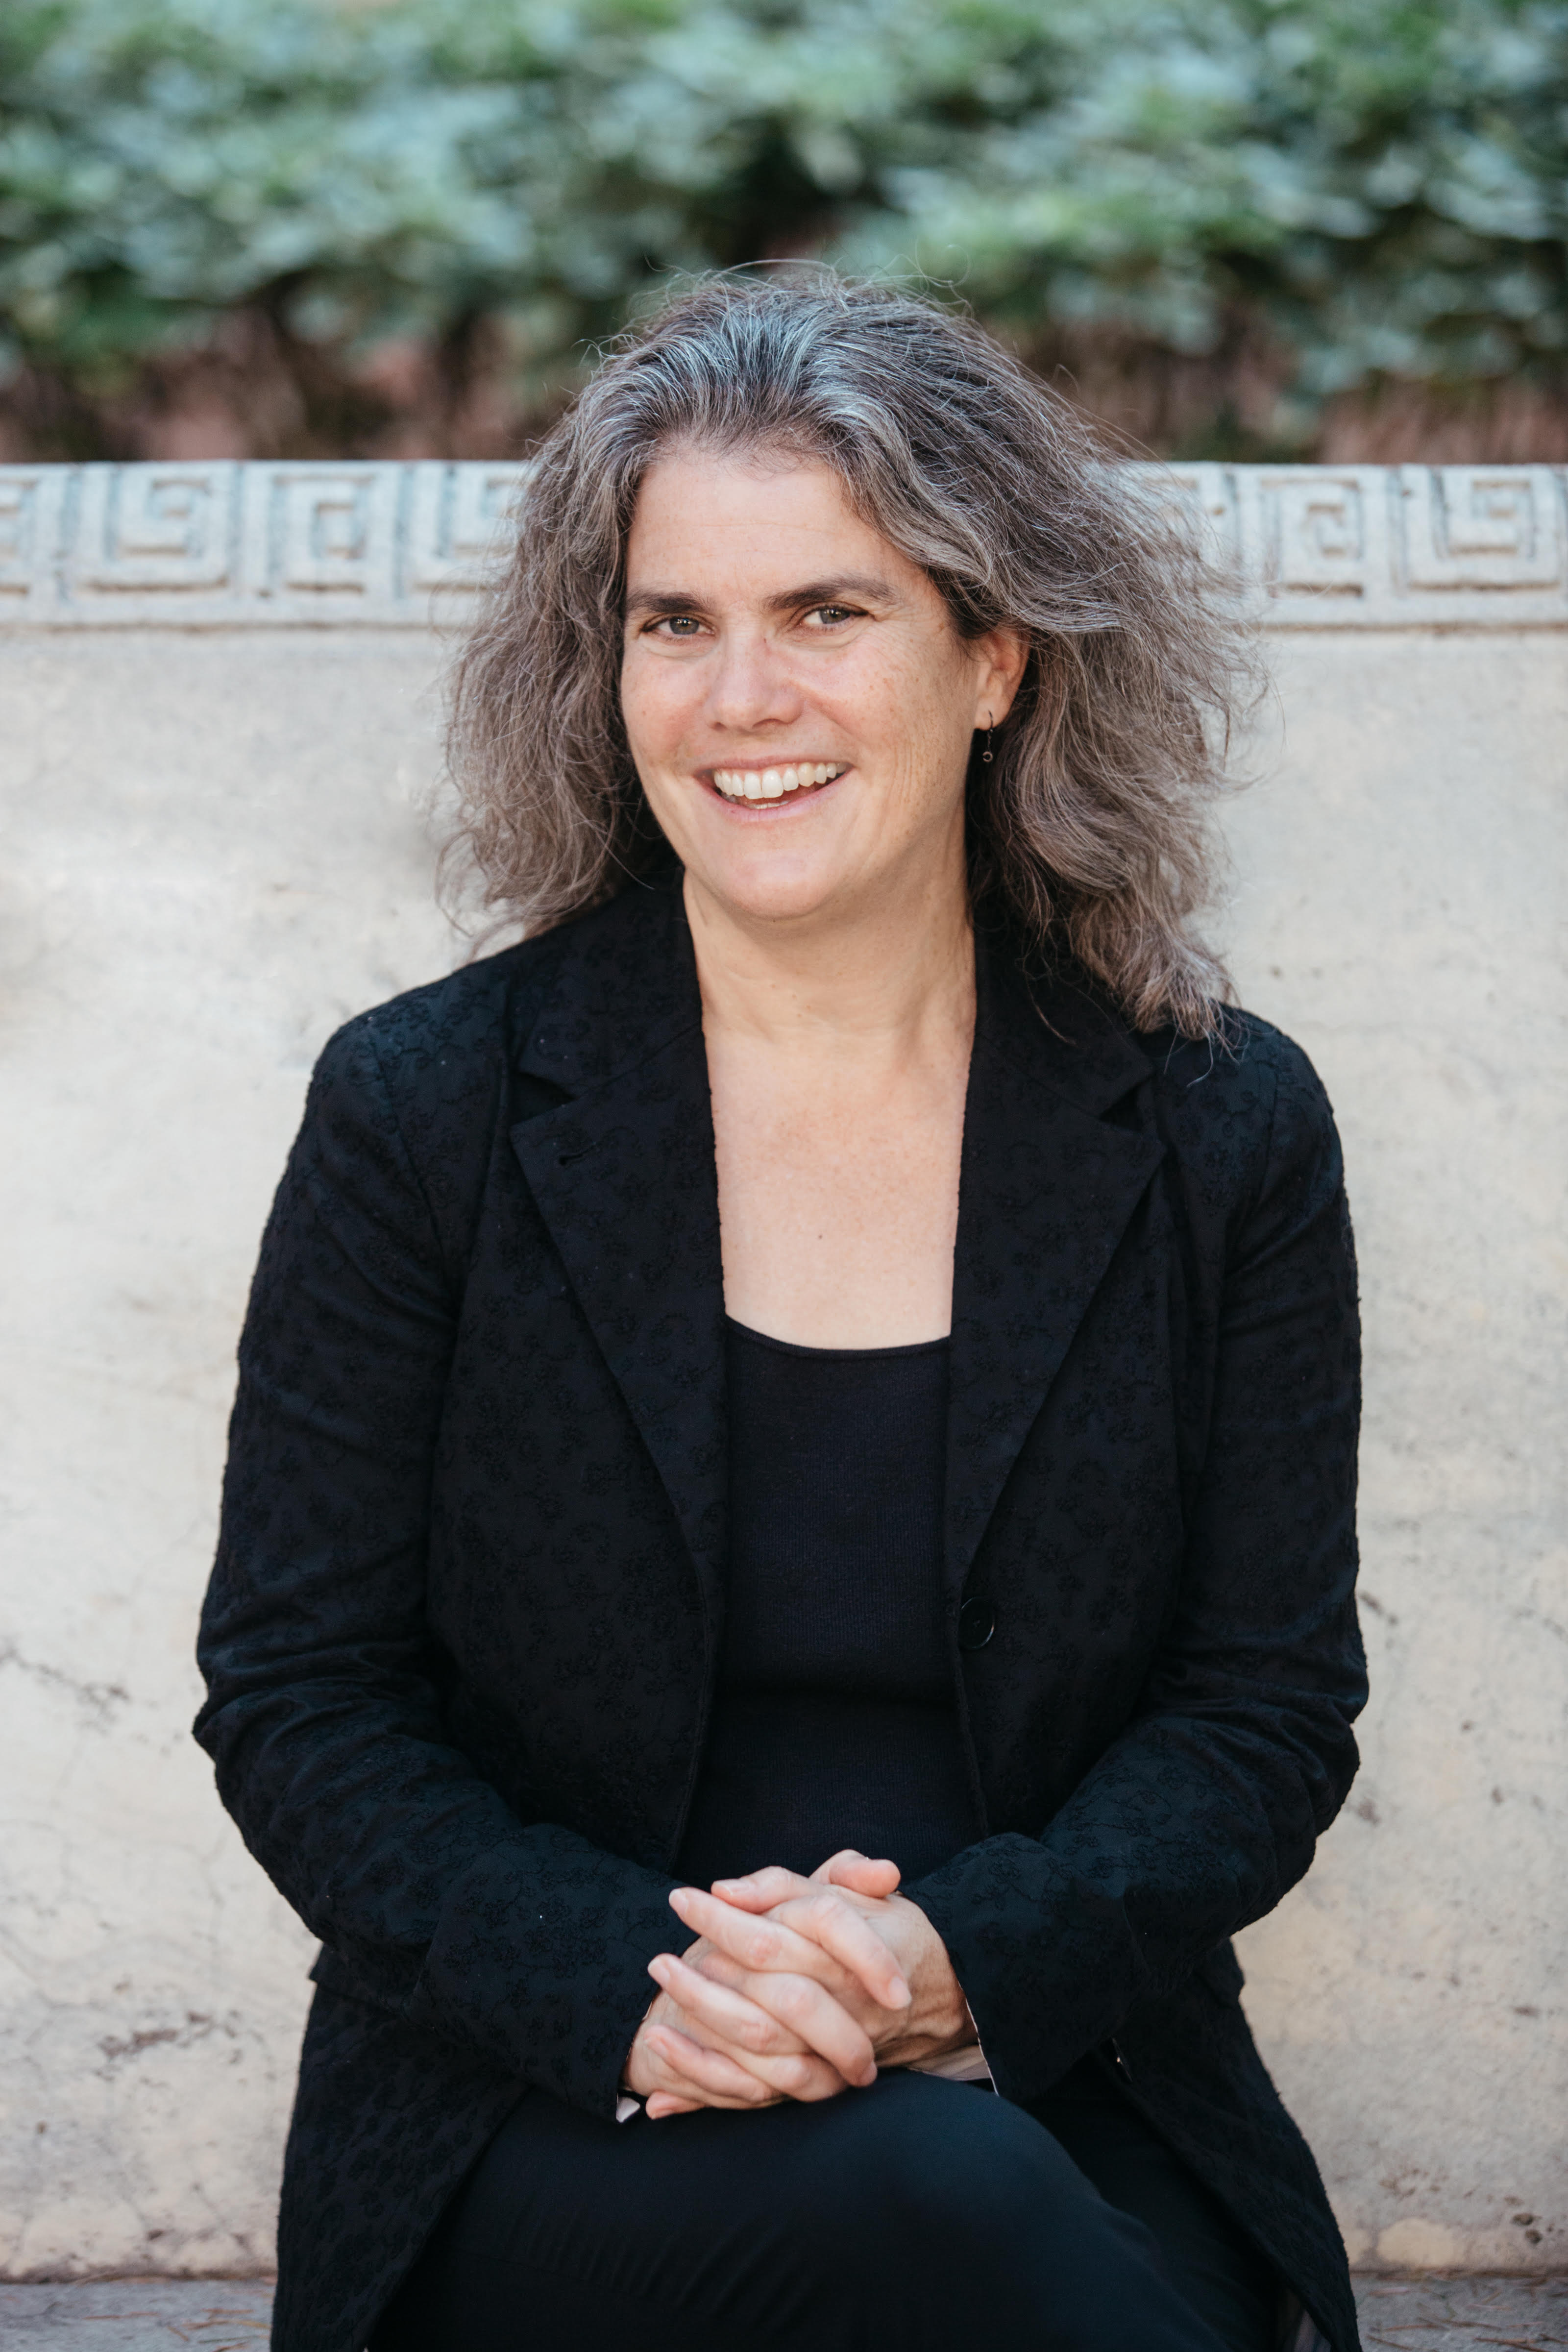 Andrea Ghez, professor of astronomy at UCLA and winner of the 2020 Nobel Prize in Physics